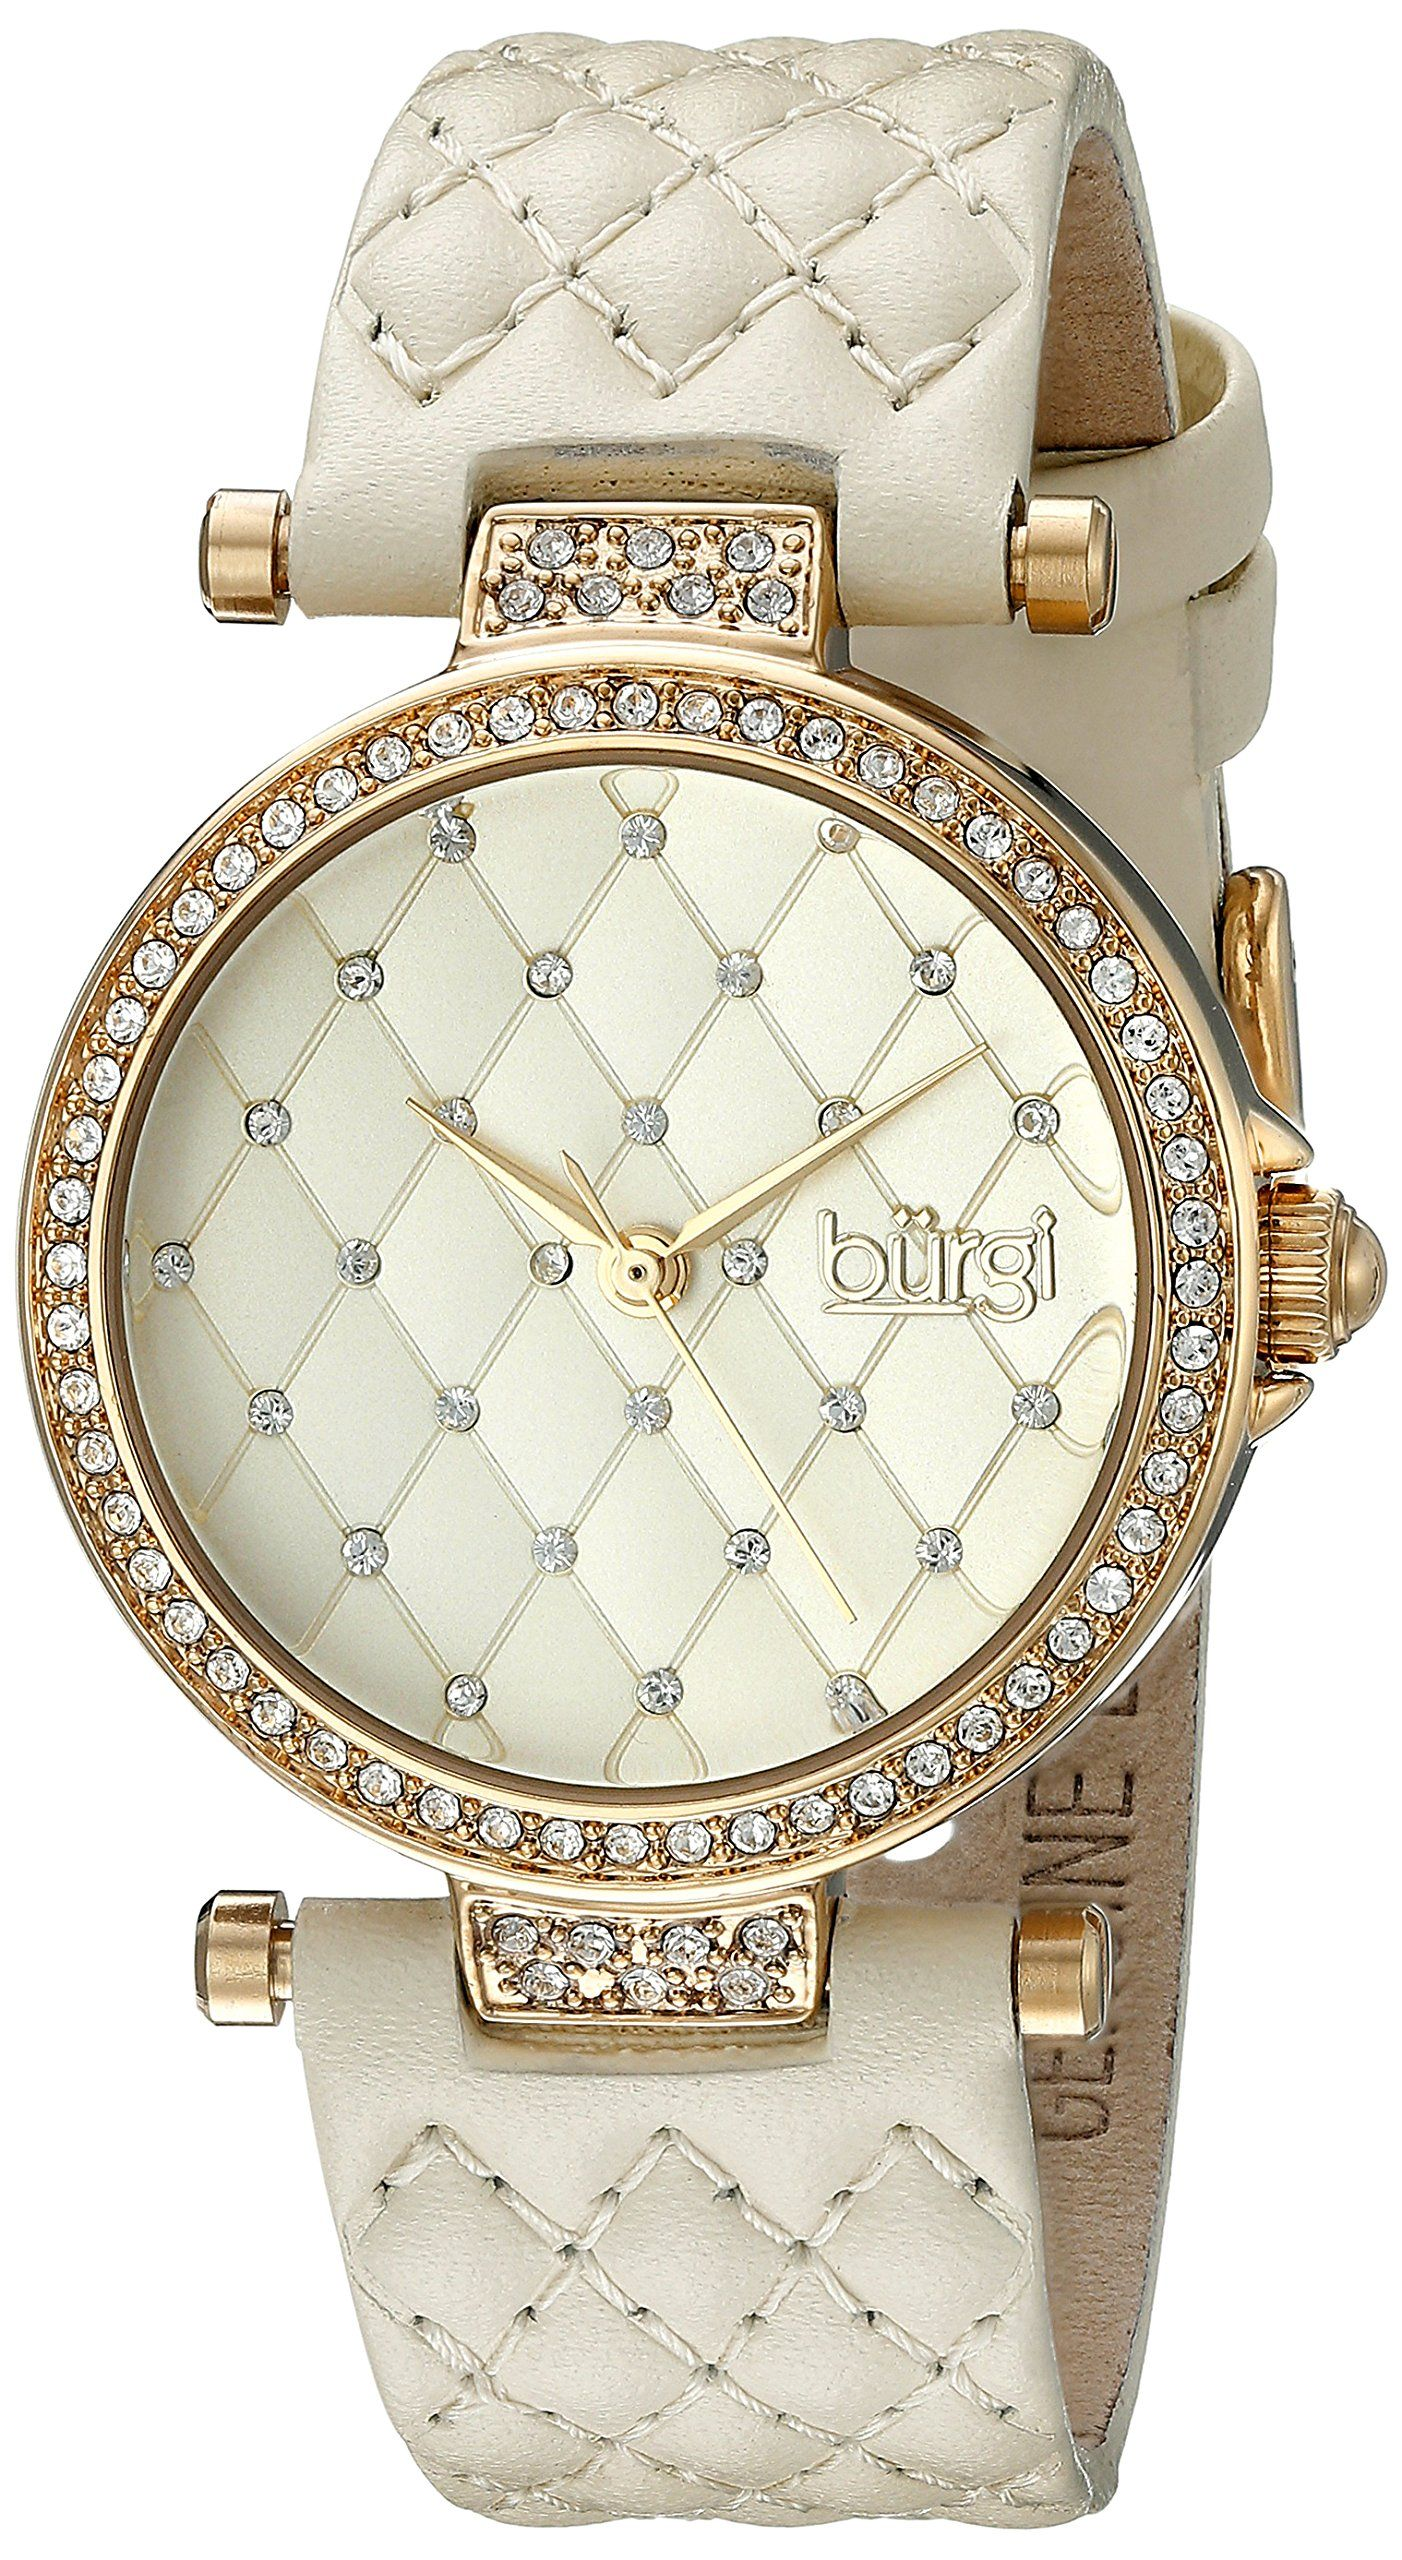 Burgi women 39 s bur154 gold tone swarovski crystal watch with quilted band women 39 s watches for Crystal watches